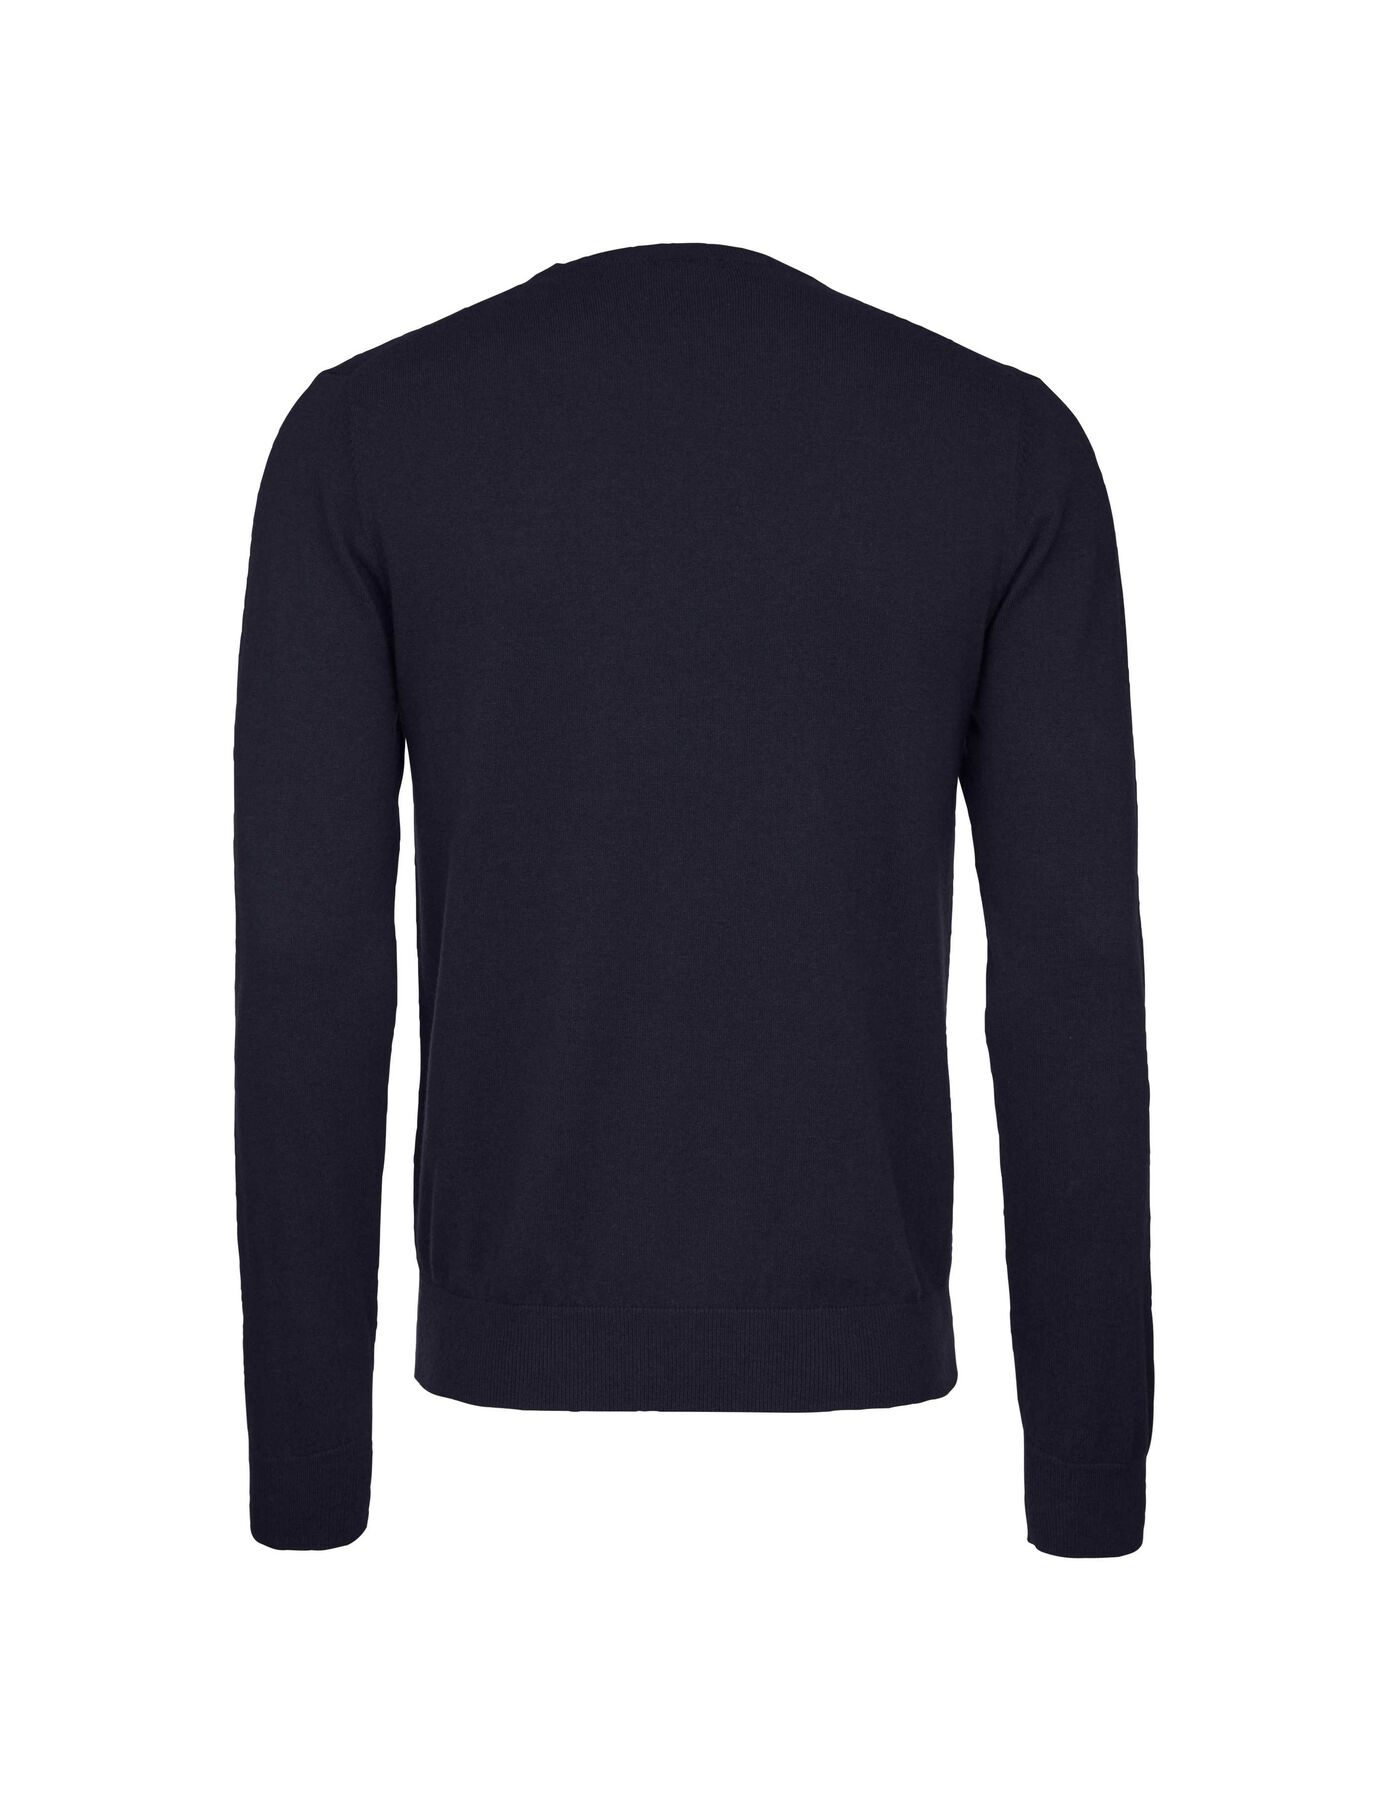 MATIAS CC PULLOVER in Light Ink from Tiger of Sweden